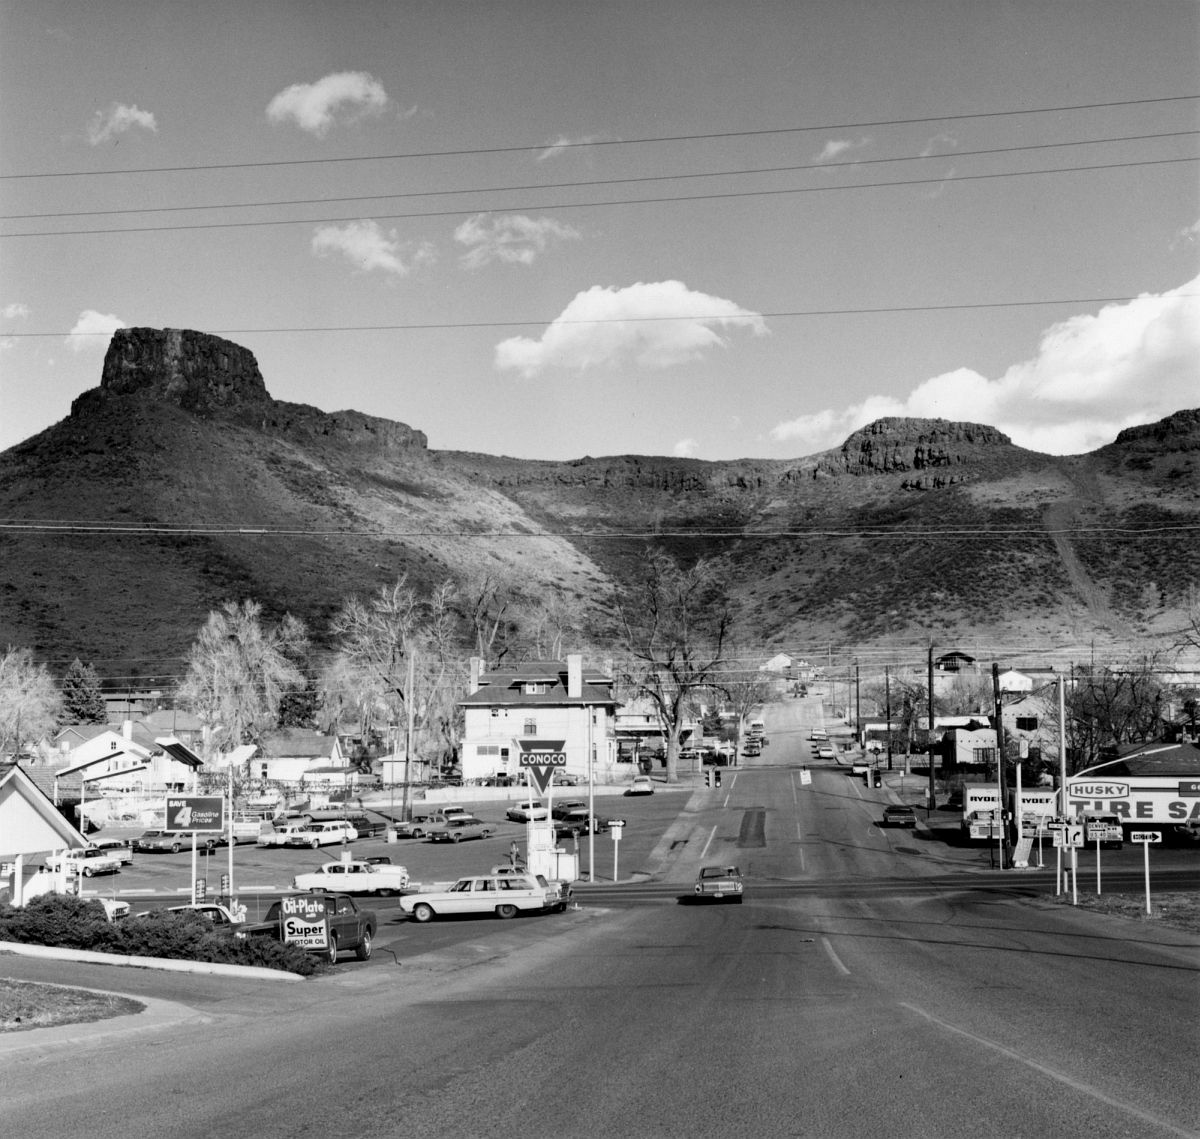 Golden, Colorado, 1969